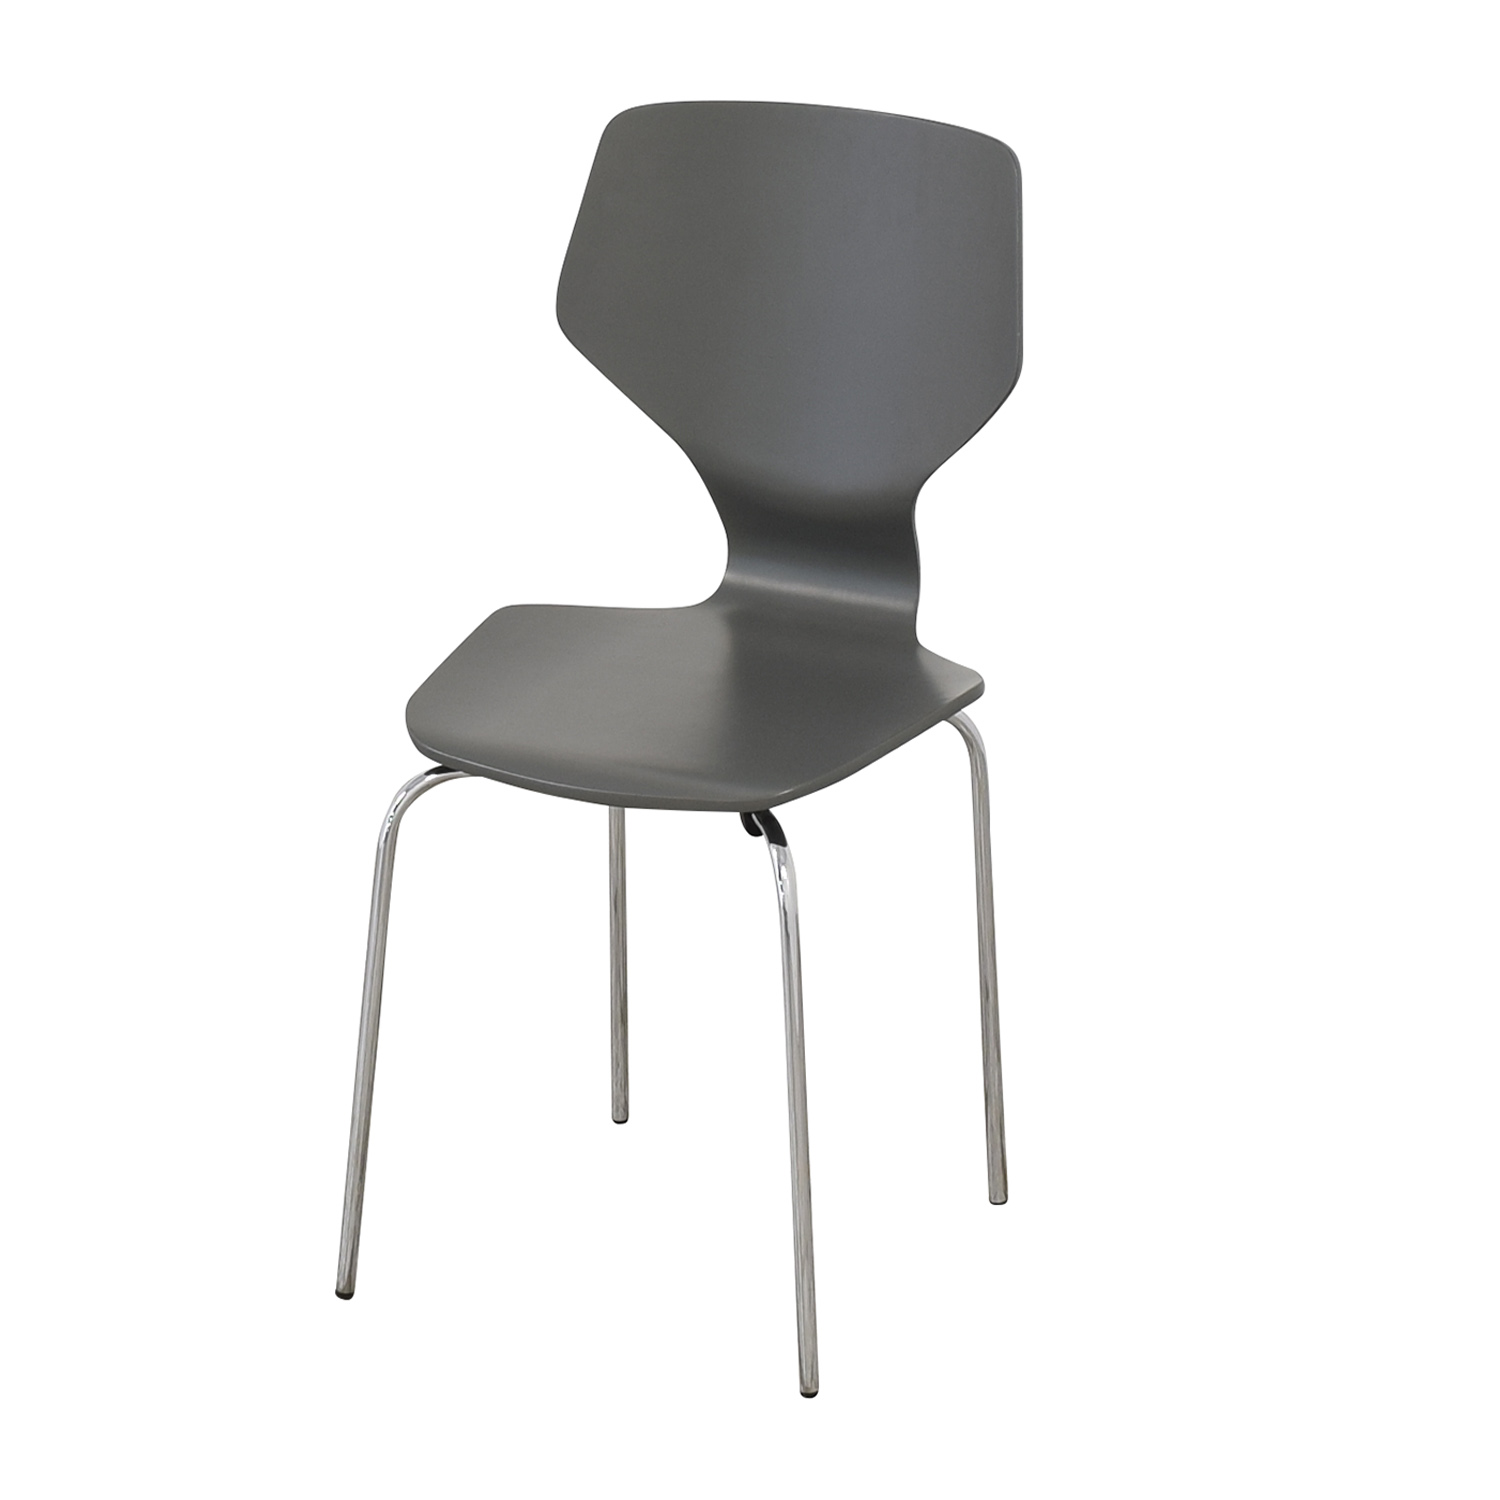 Room & Board Room & Board Modern Pike Side Chairs price